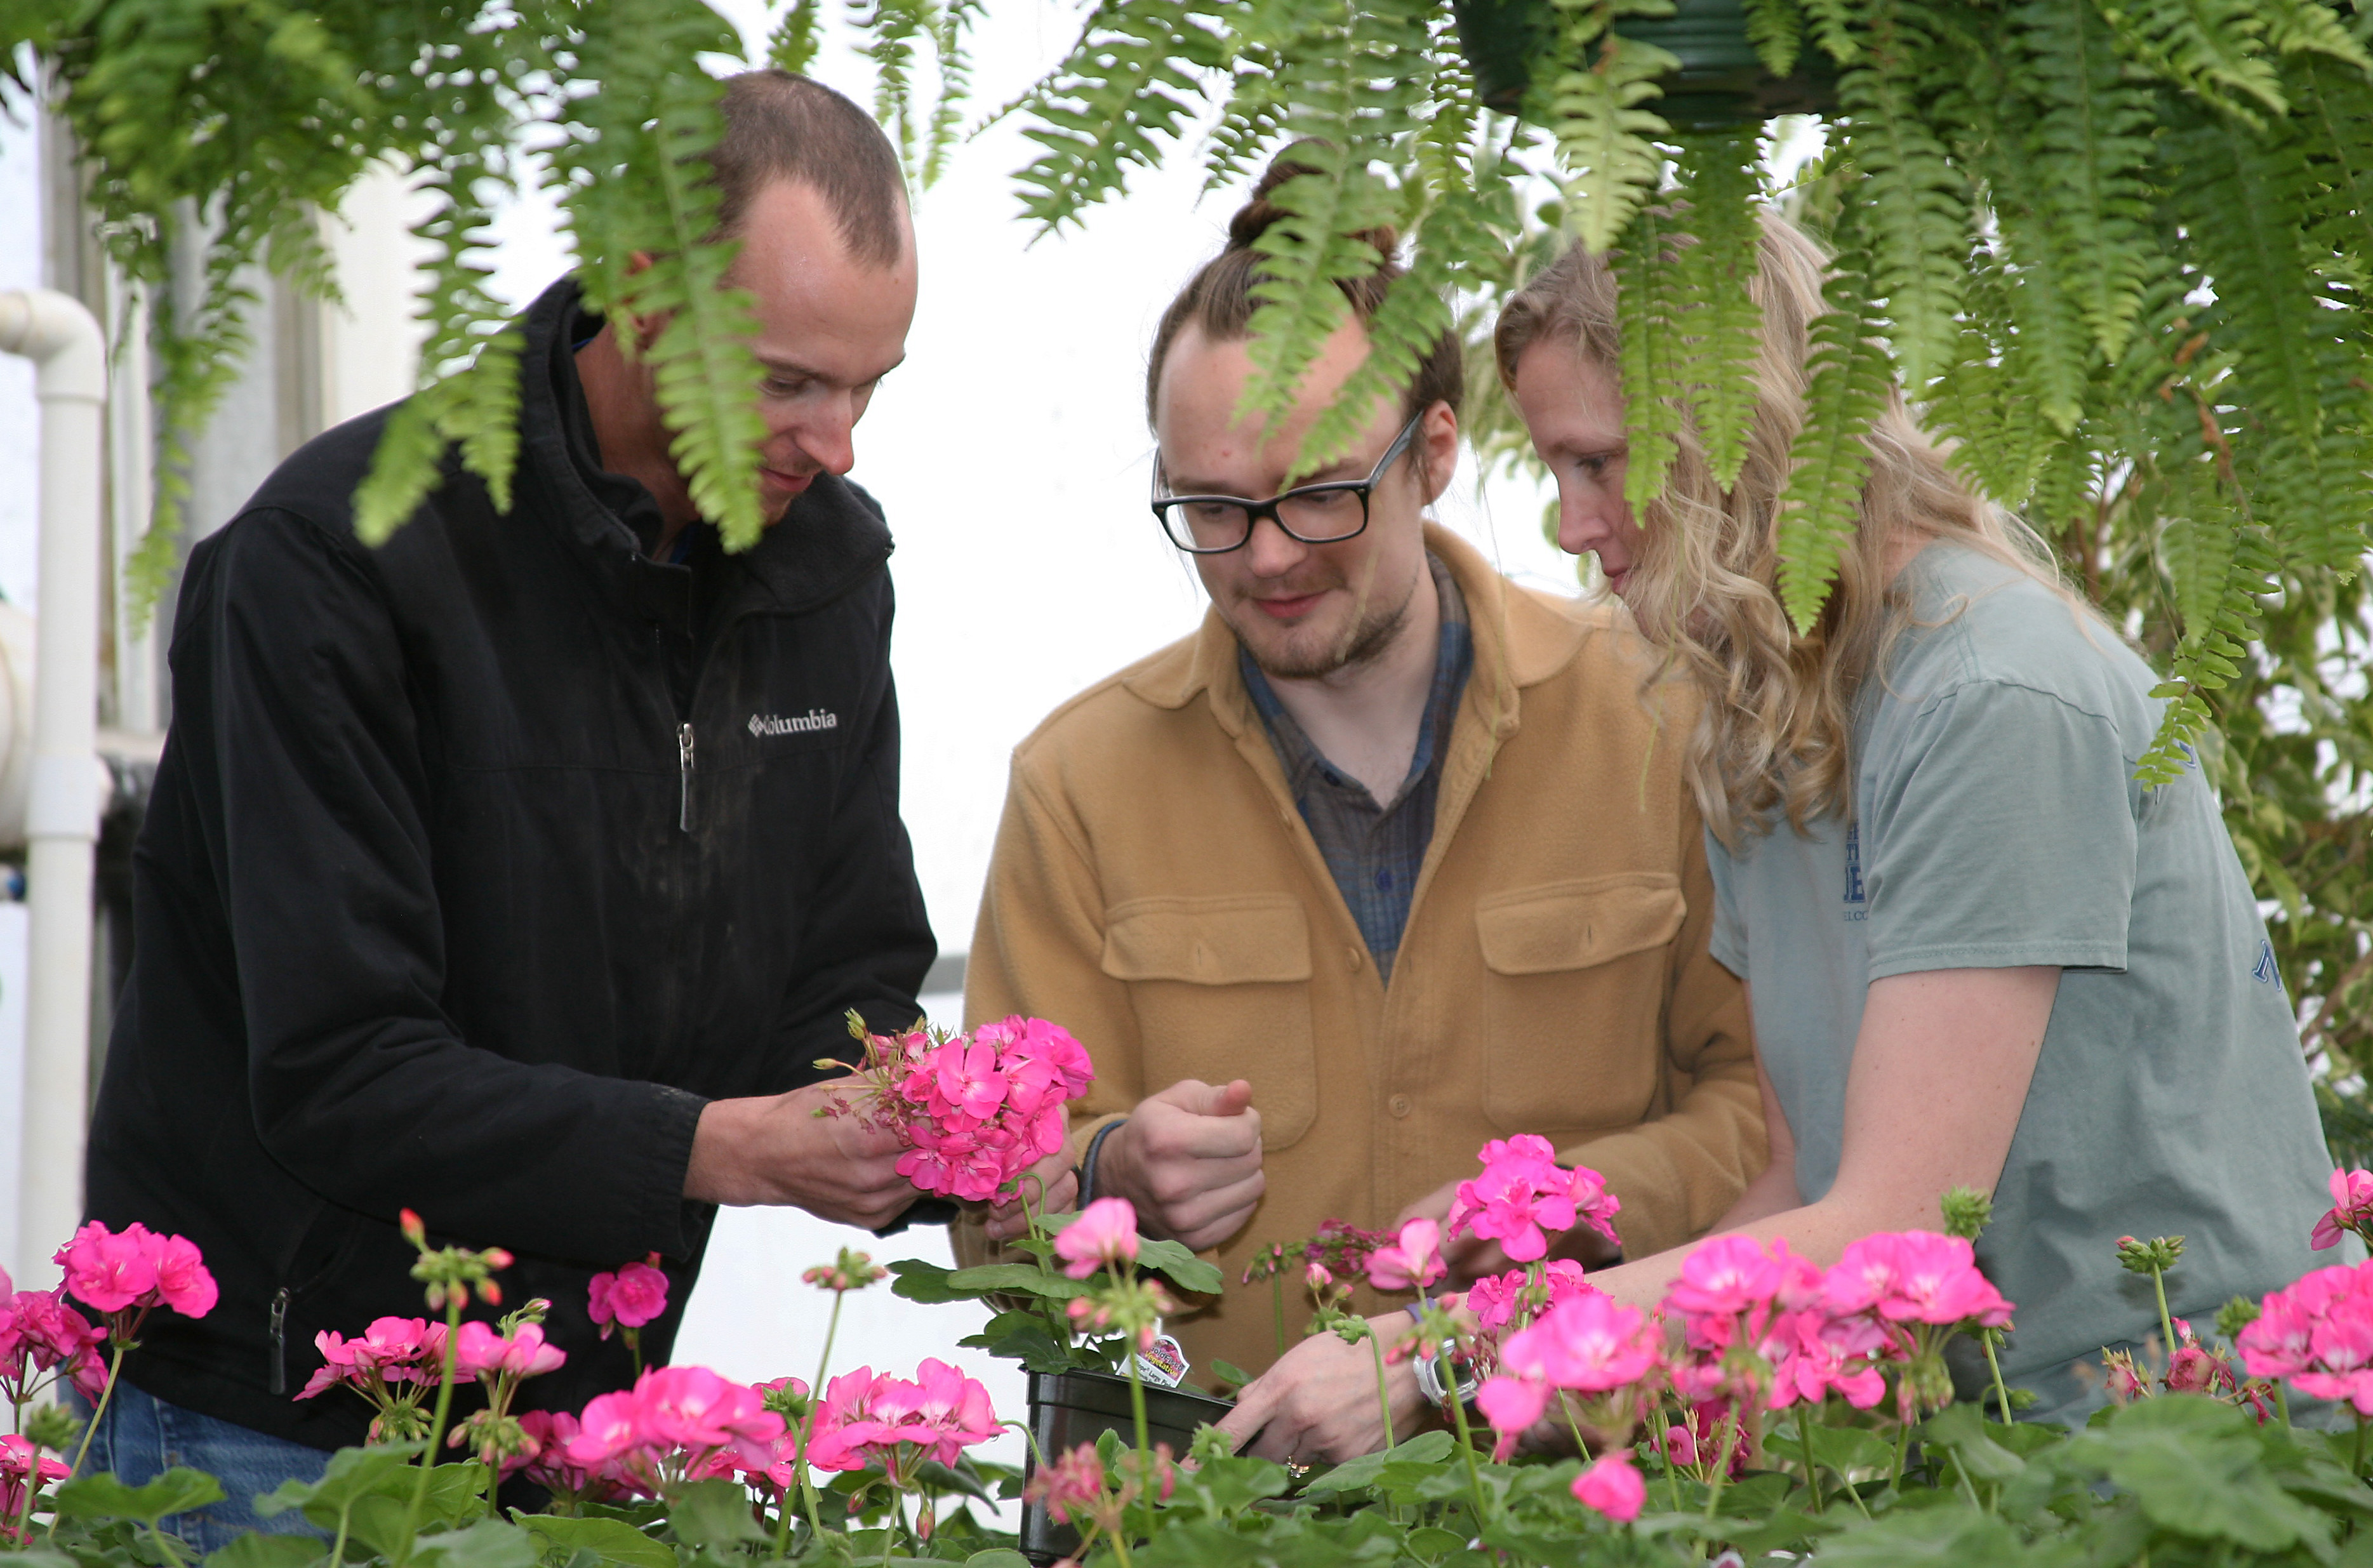 Chase Bohannon (left) of Calhoun, Jeffrey King (center) of Rome, and Jessica Wakefield (right) of Rome prepare for GNTC's Spring Plant Sale.